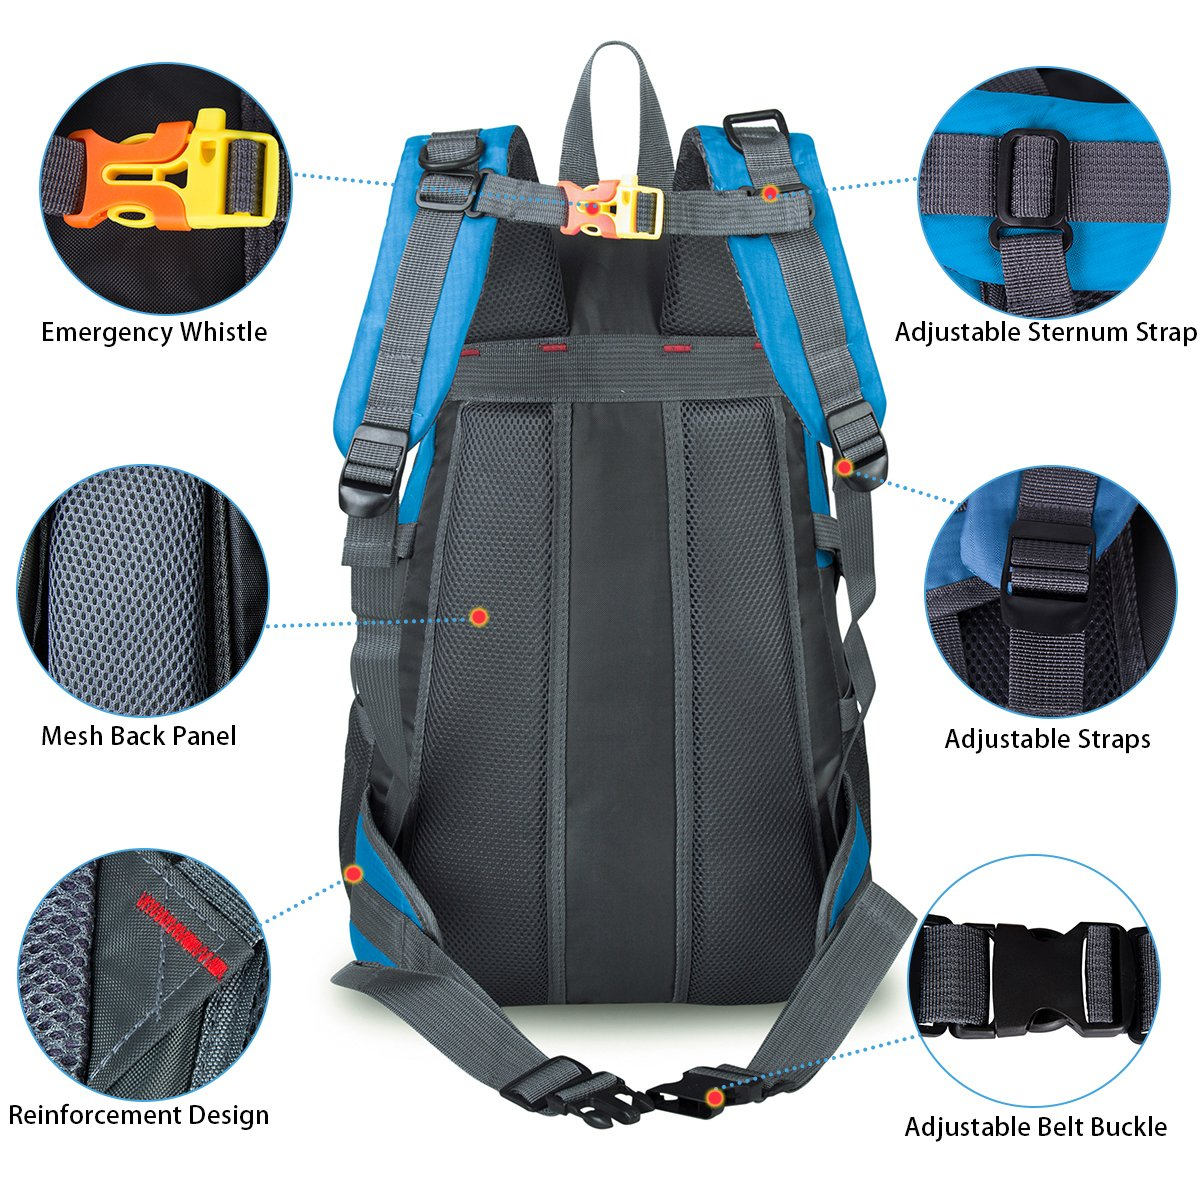 Water Resistant Sports Backpack Lightweight Outdoor Bag for Travel Climbing Camping Mountaineering School Bag Hiking Daypack Size 11.8\'\'x 8.7\'\'x 20.5\'\' (Blue)